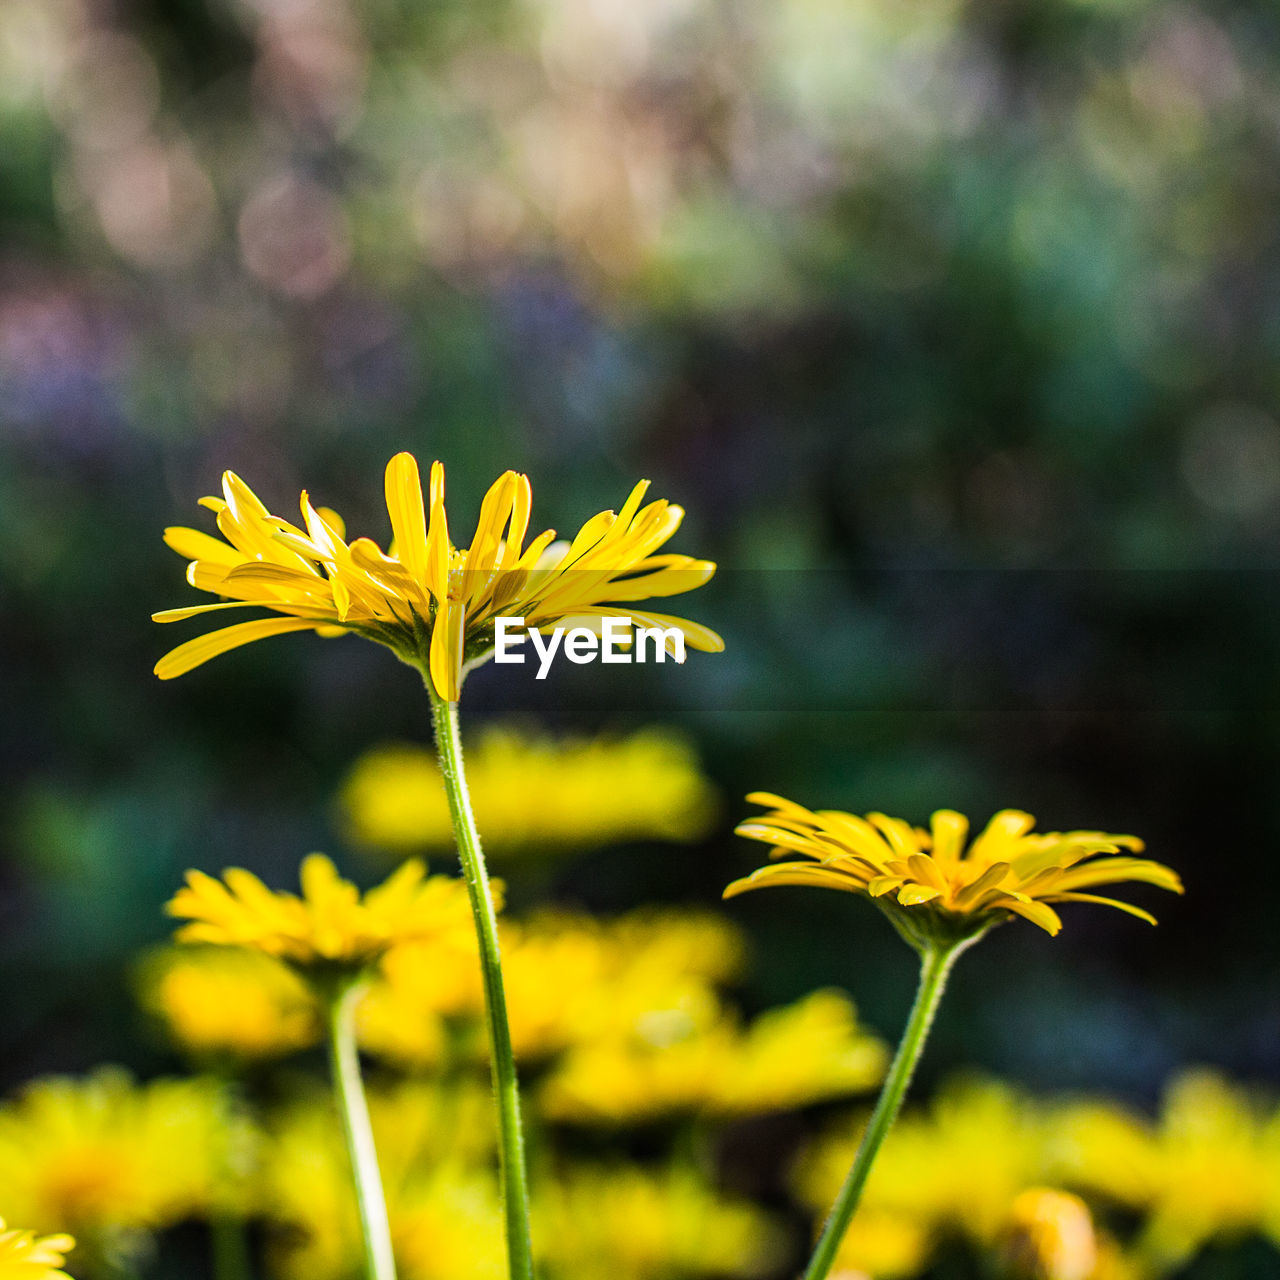 flower, yellow, growth, fragility, nature, petal, beauty in nature, plant, freshness, flower head, blooming, focus on foreground, outdoors, field, no people, day, close-up